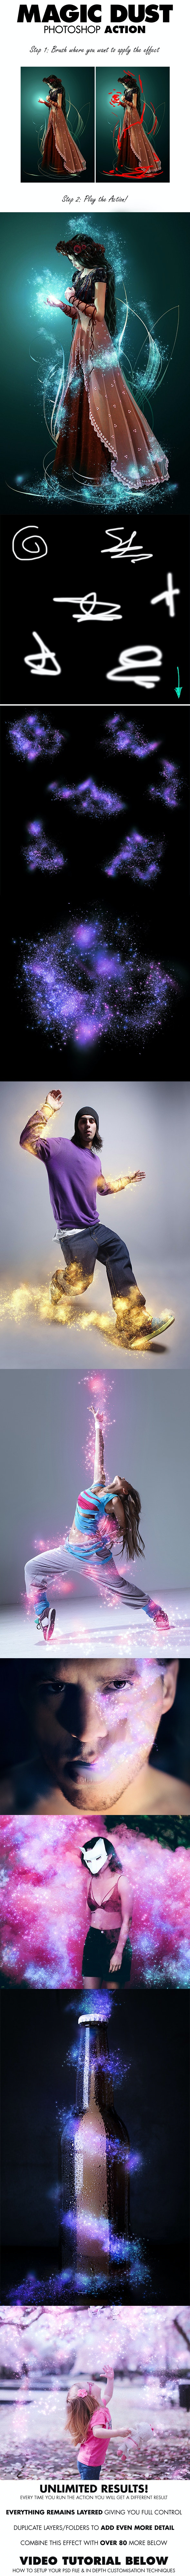 Magic Dust Photoshop Action - Photo Effects Actions